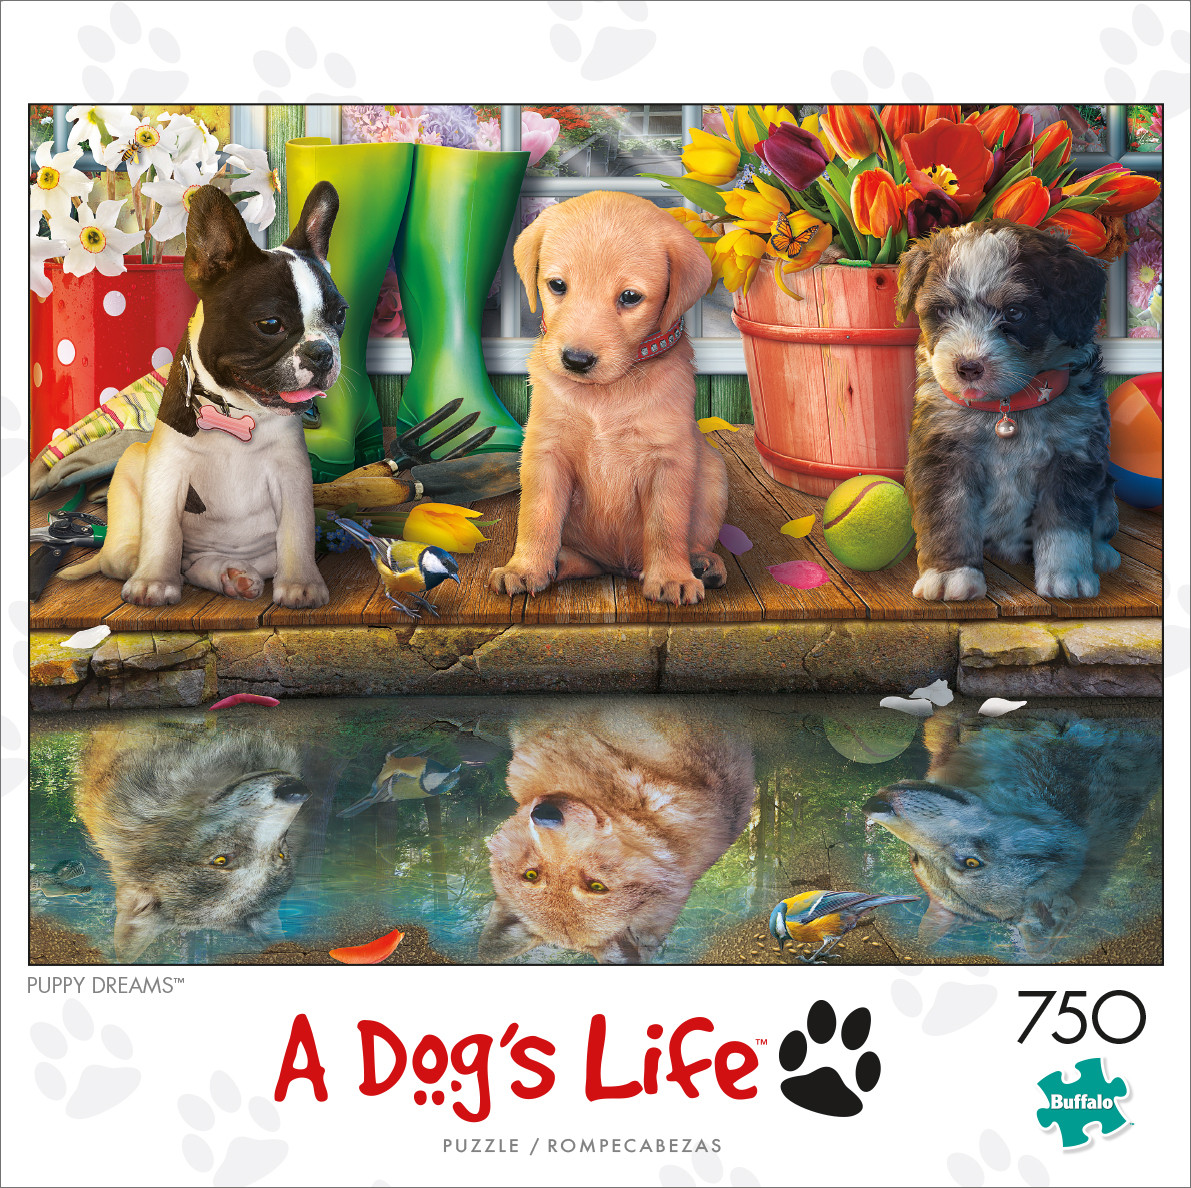 A Dogs Life Puppy Dreams 750 Piece Jigsaw Puzzle